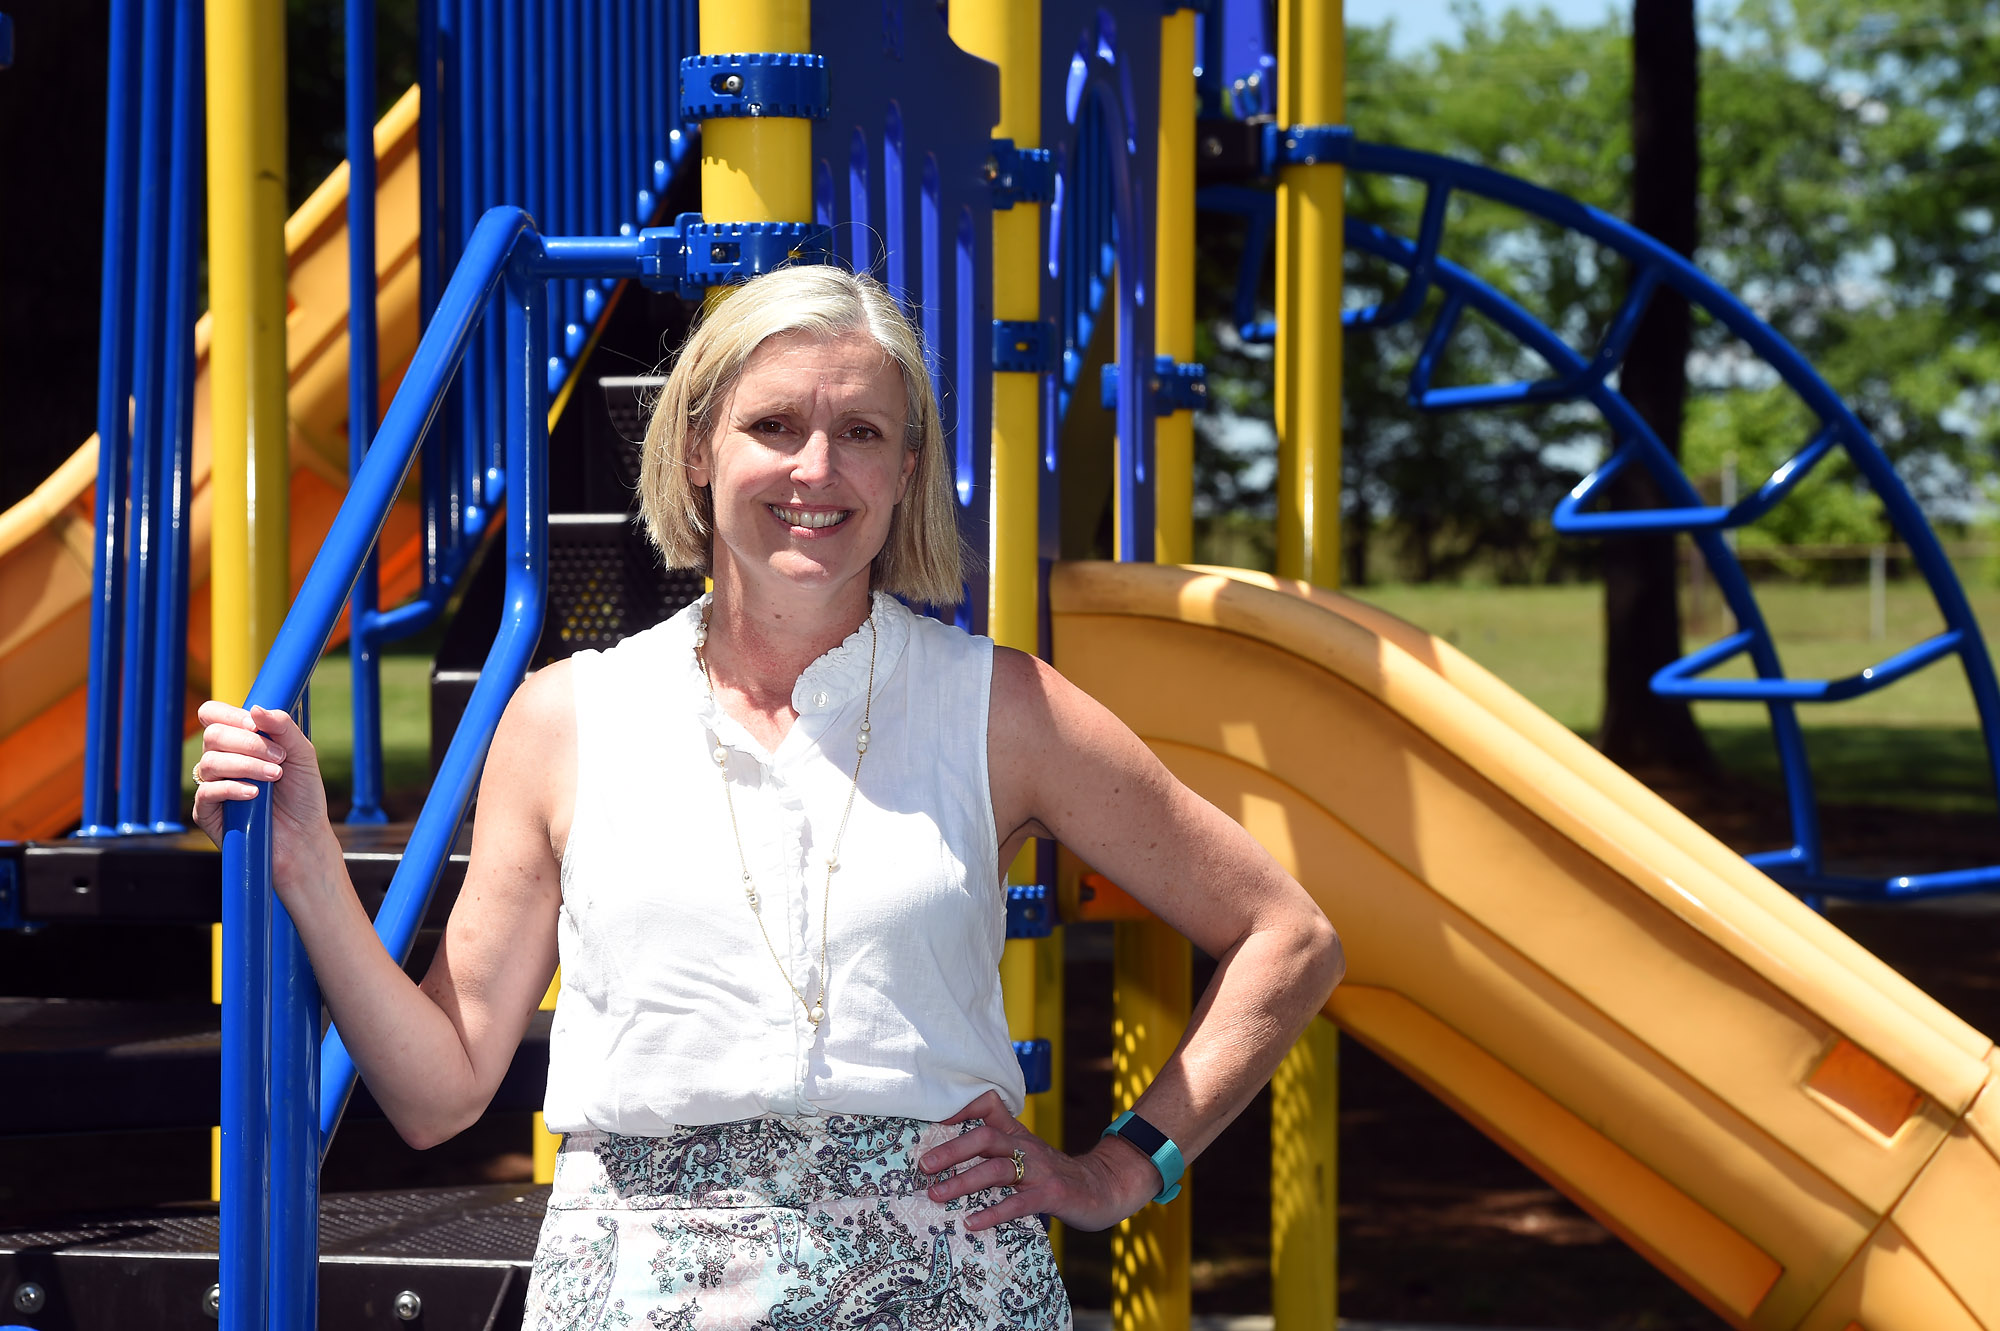 Dr. Susan Davies, associate professor in the Department of Health Behavior and a scientist in the UAB Center for the Study of Community Health and the UAB Center for the Advancement of Youth Health, poses at a playground near the UAB campus in Birmingham, Ala., Tuesday, April 25, 2017. (Photo by Mark Almond)